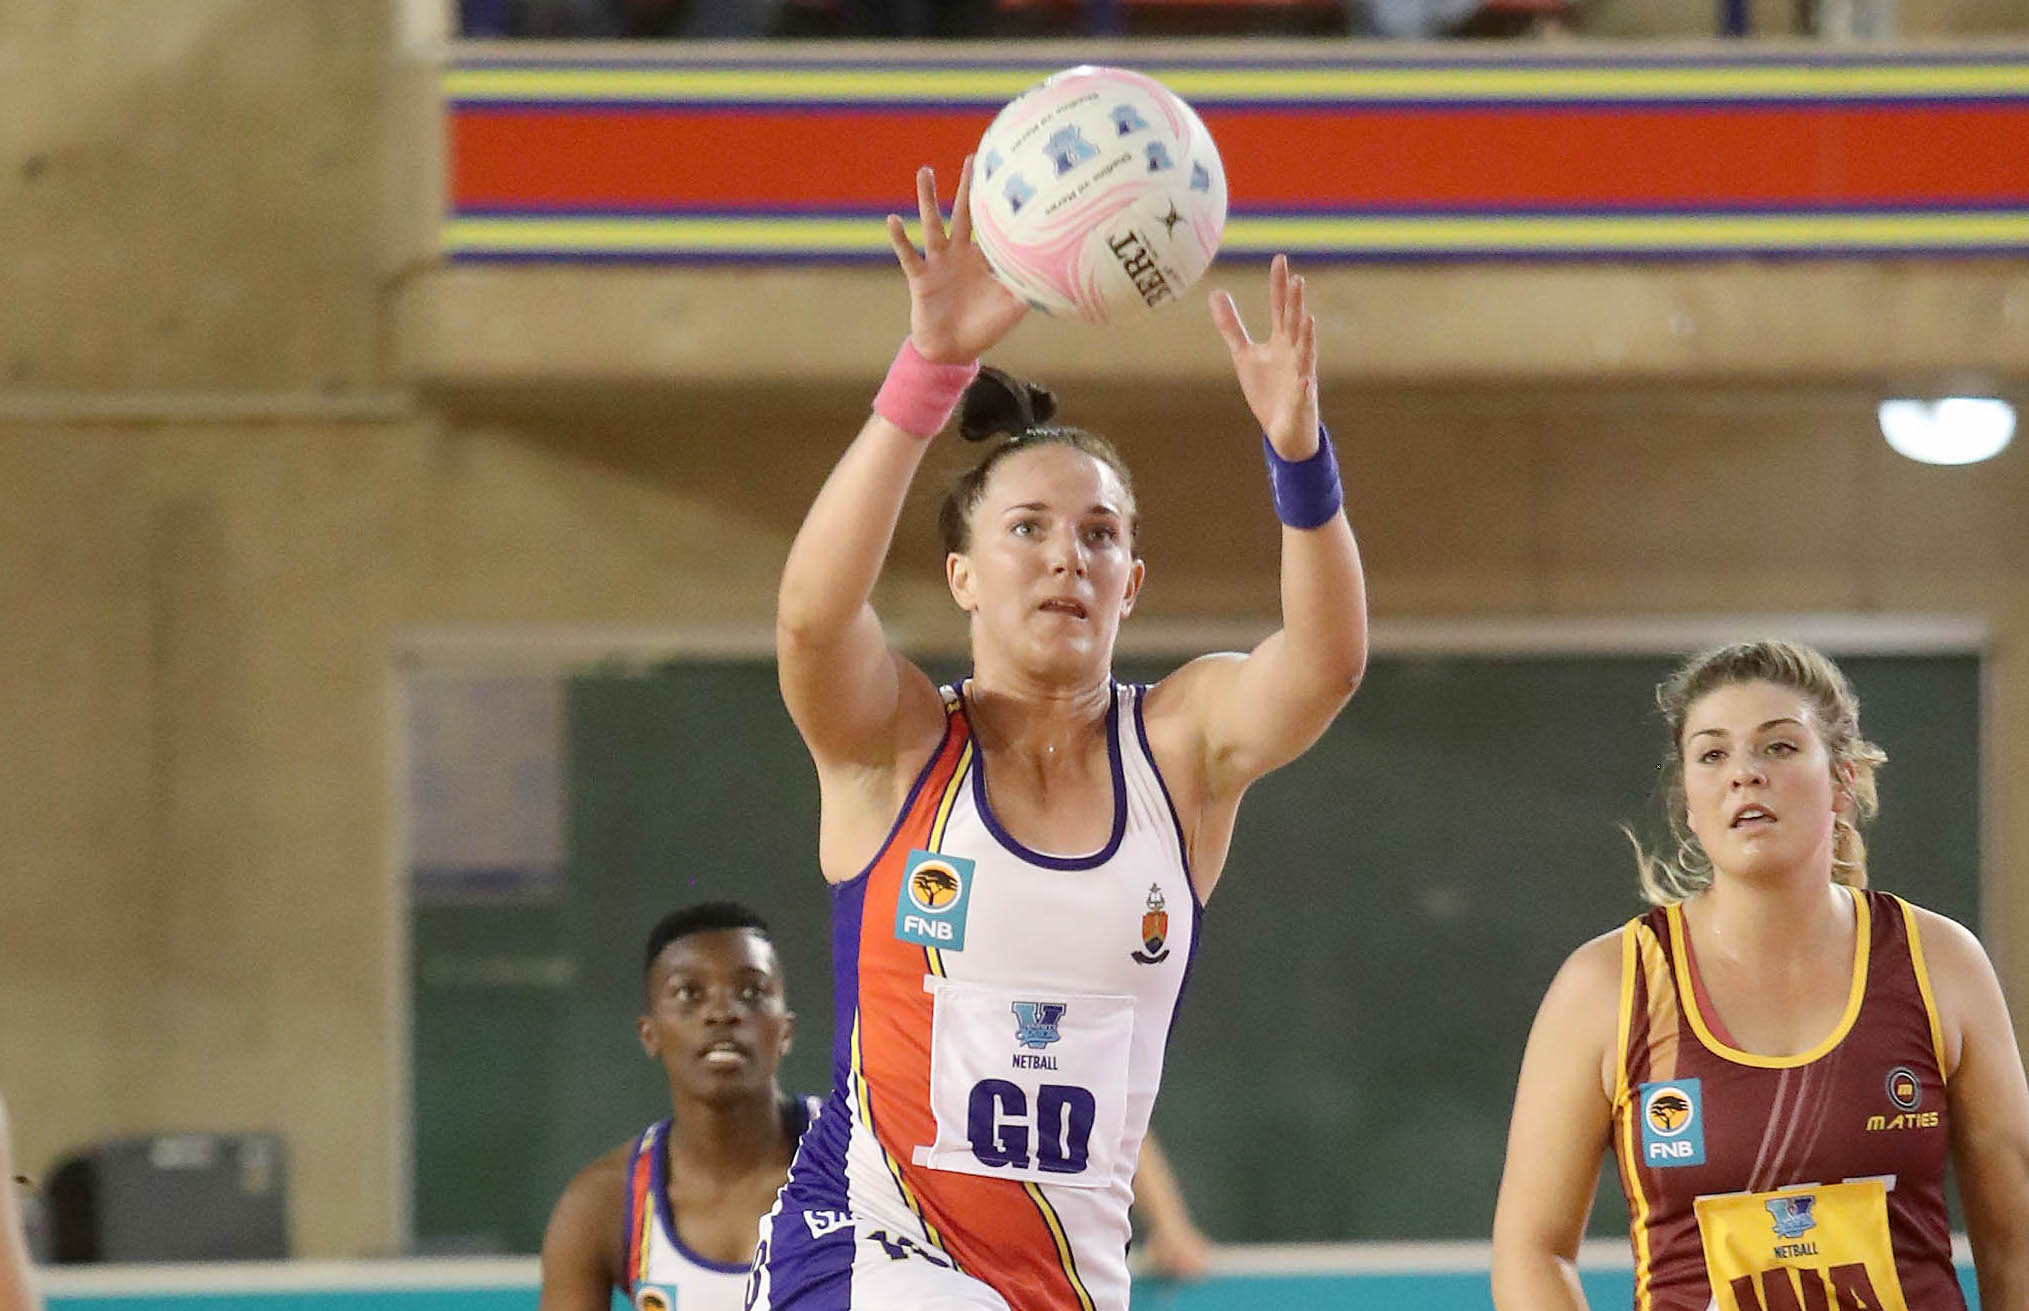 Van der Merwe wants to end her playing career at UP-Tuks with a Varsity Netball title